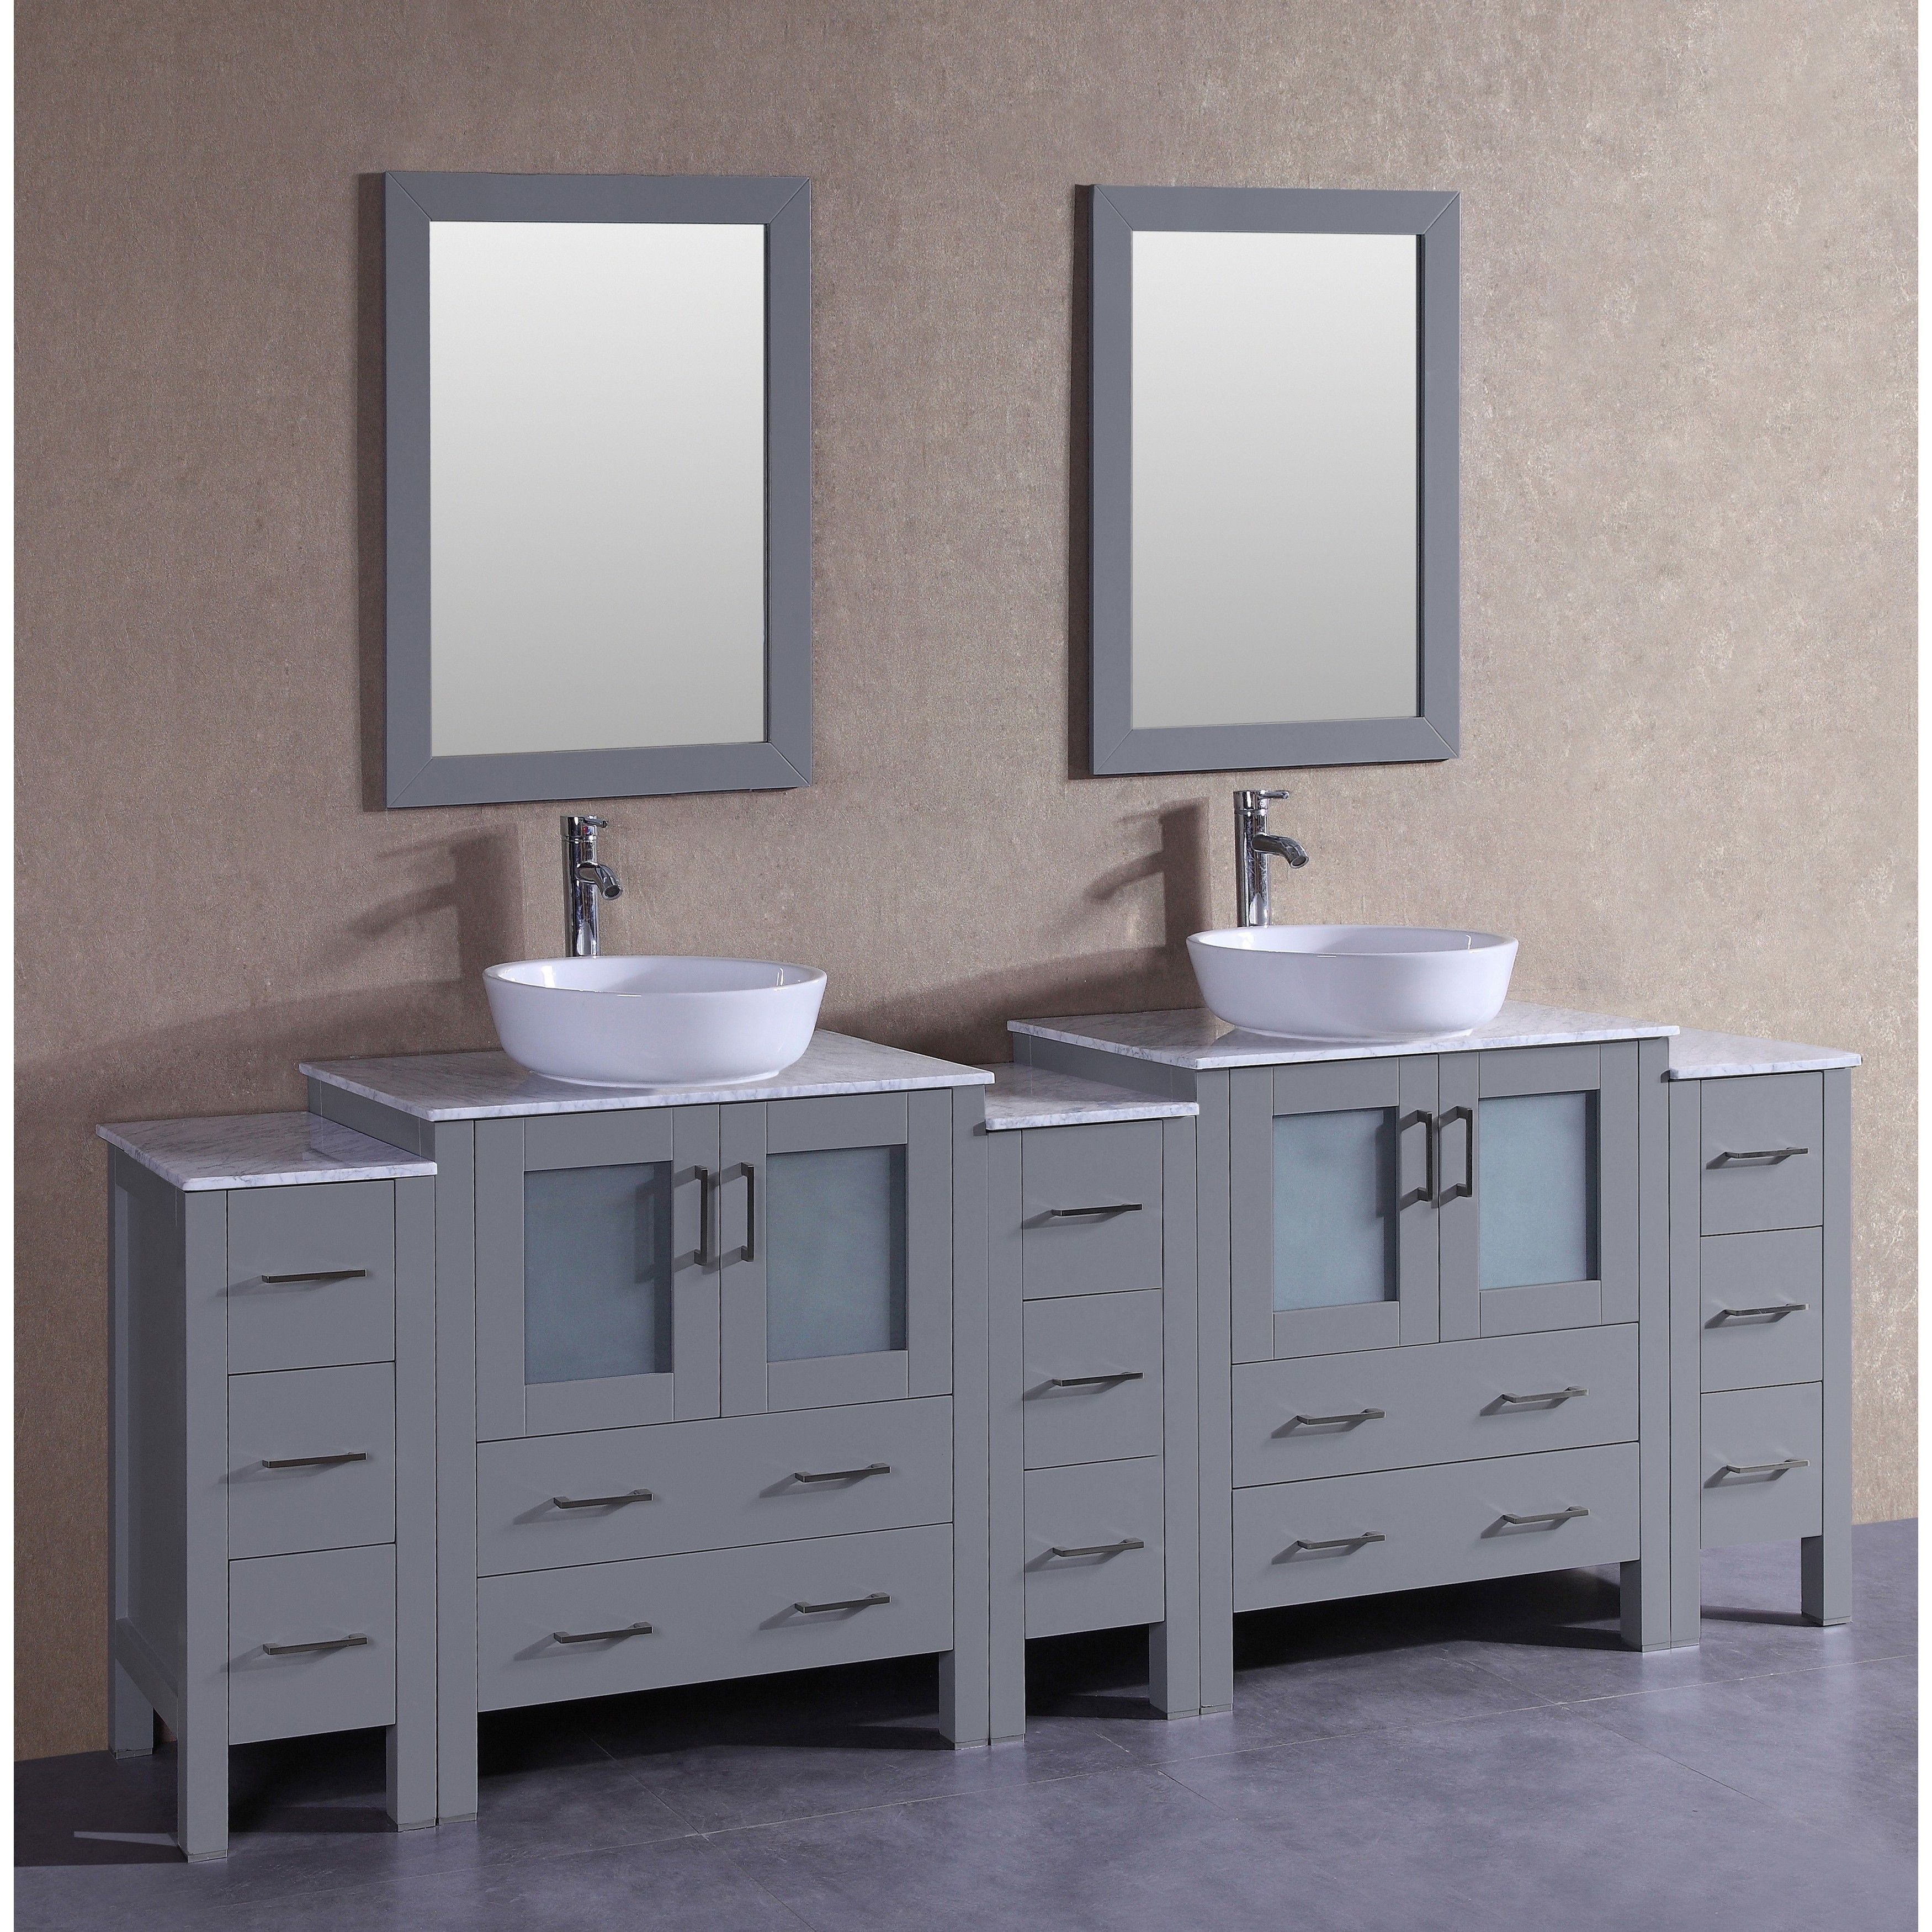 Bosconi 96 Inch Grey Double Vanity Set with White Marble Tops